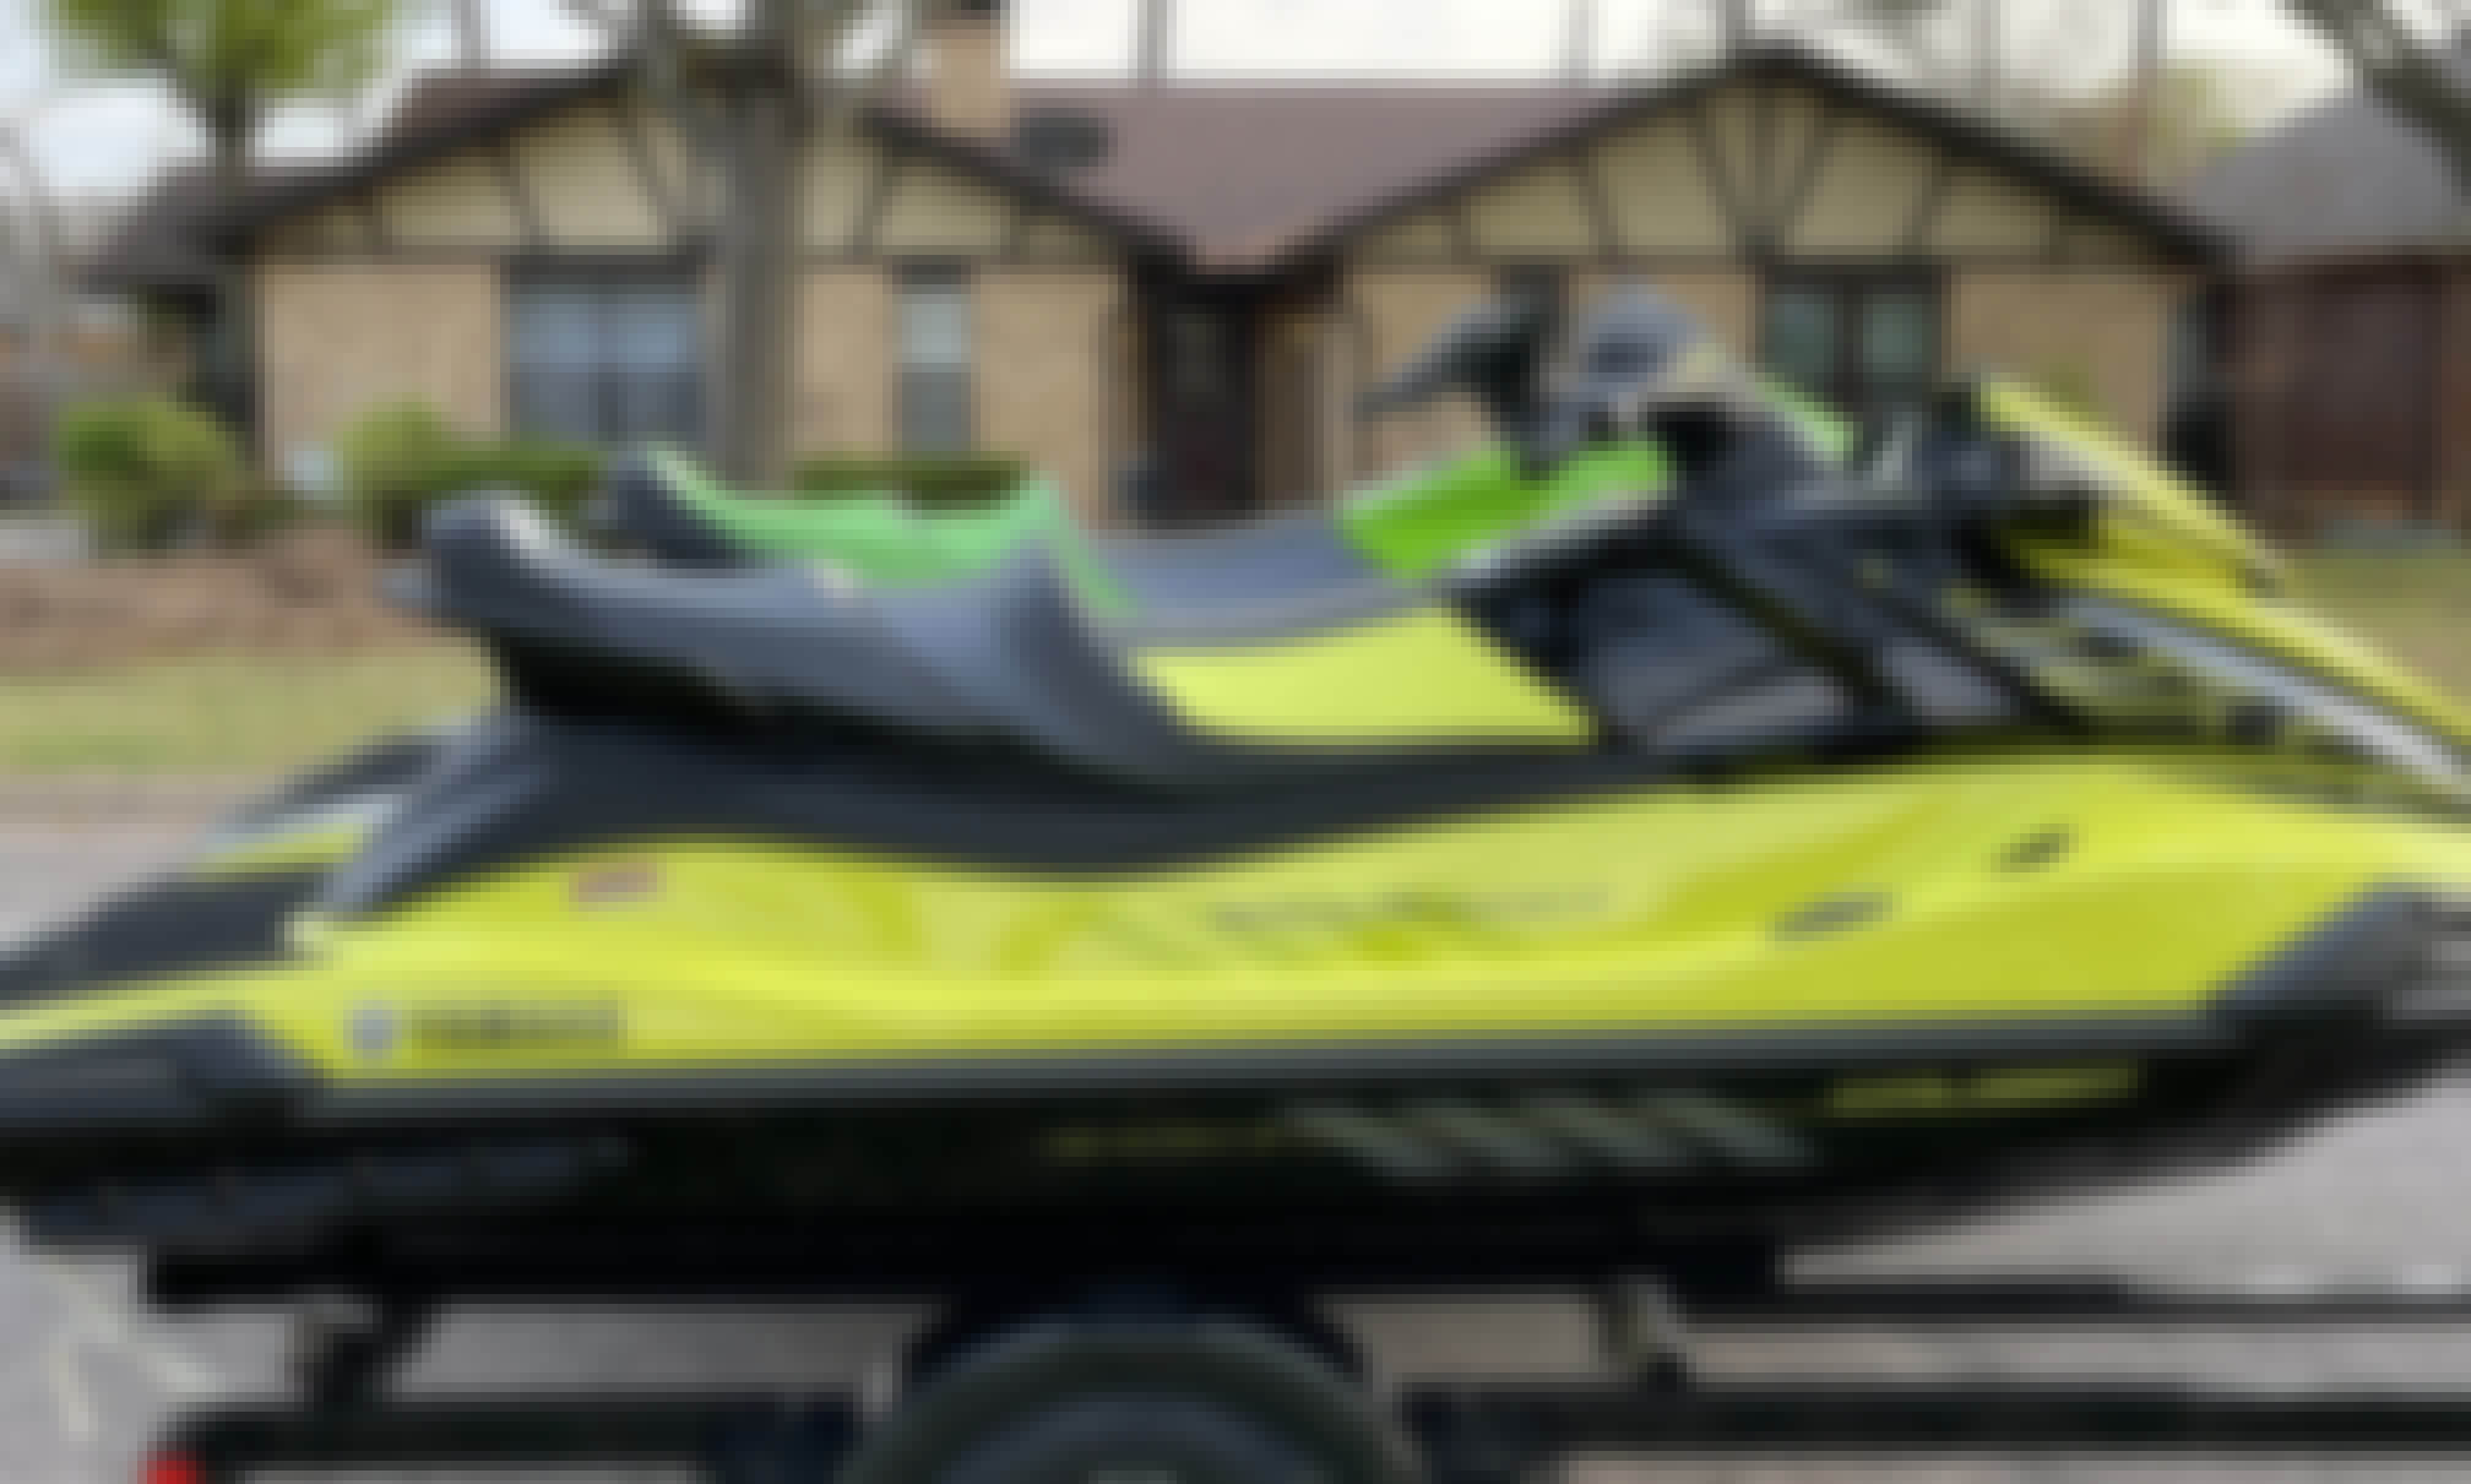 2021 Yamaha Waverunner Jet Skis For Rent x 2 | Richland-Chambers Reservoir